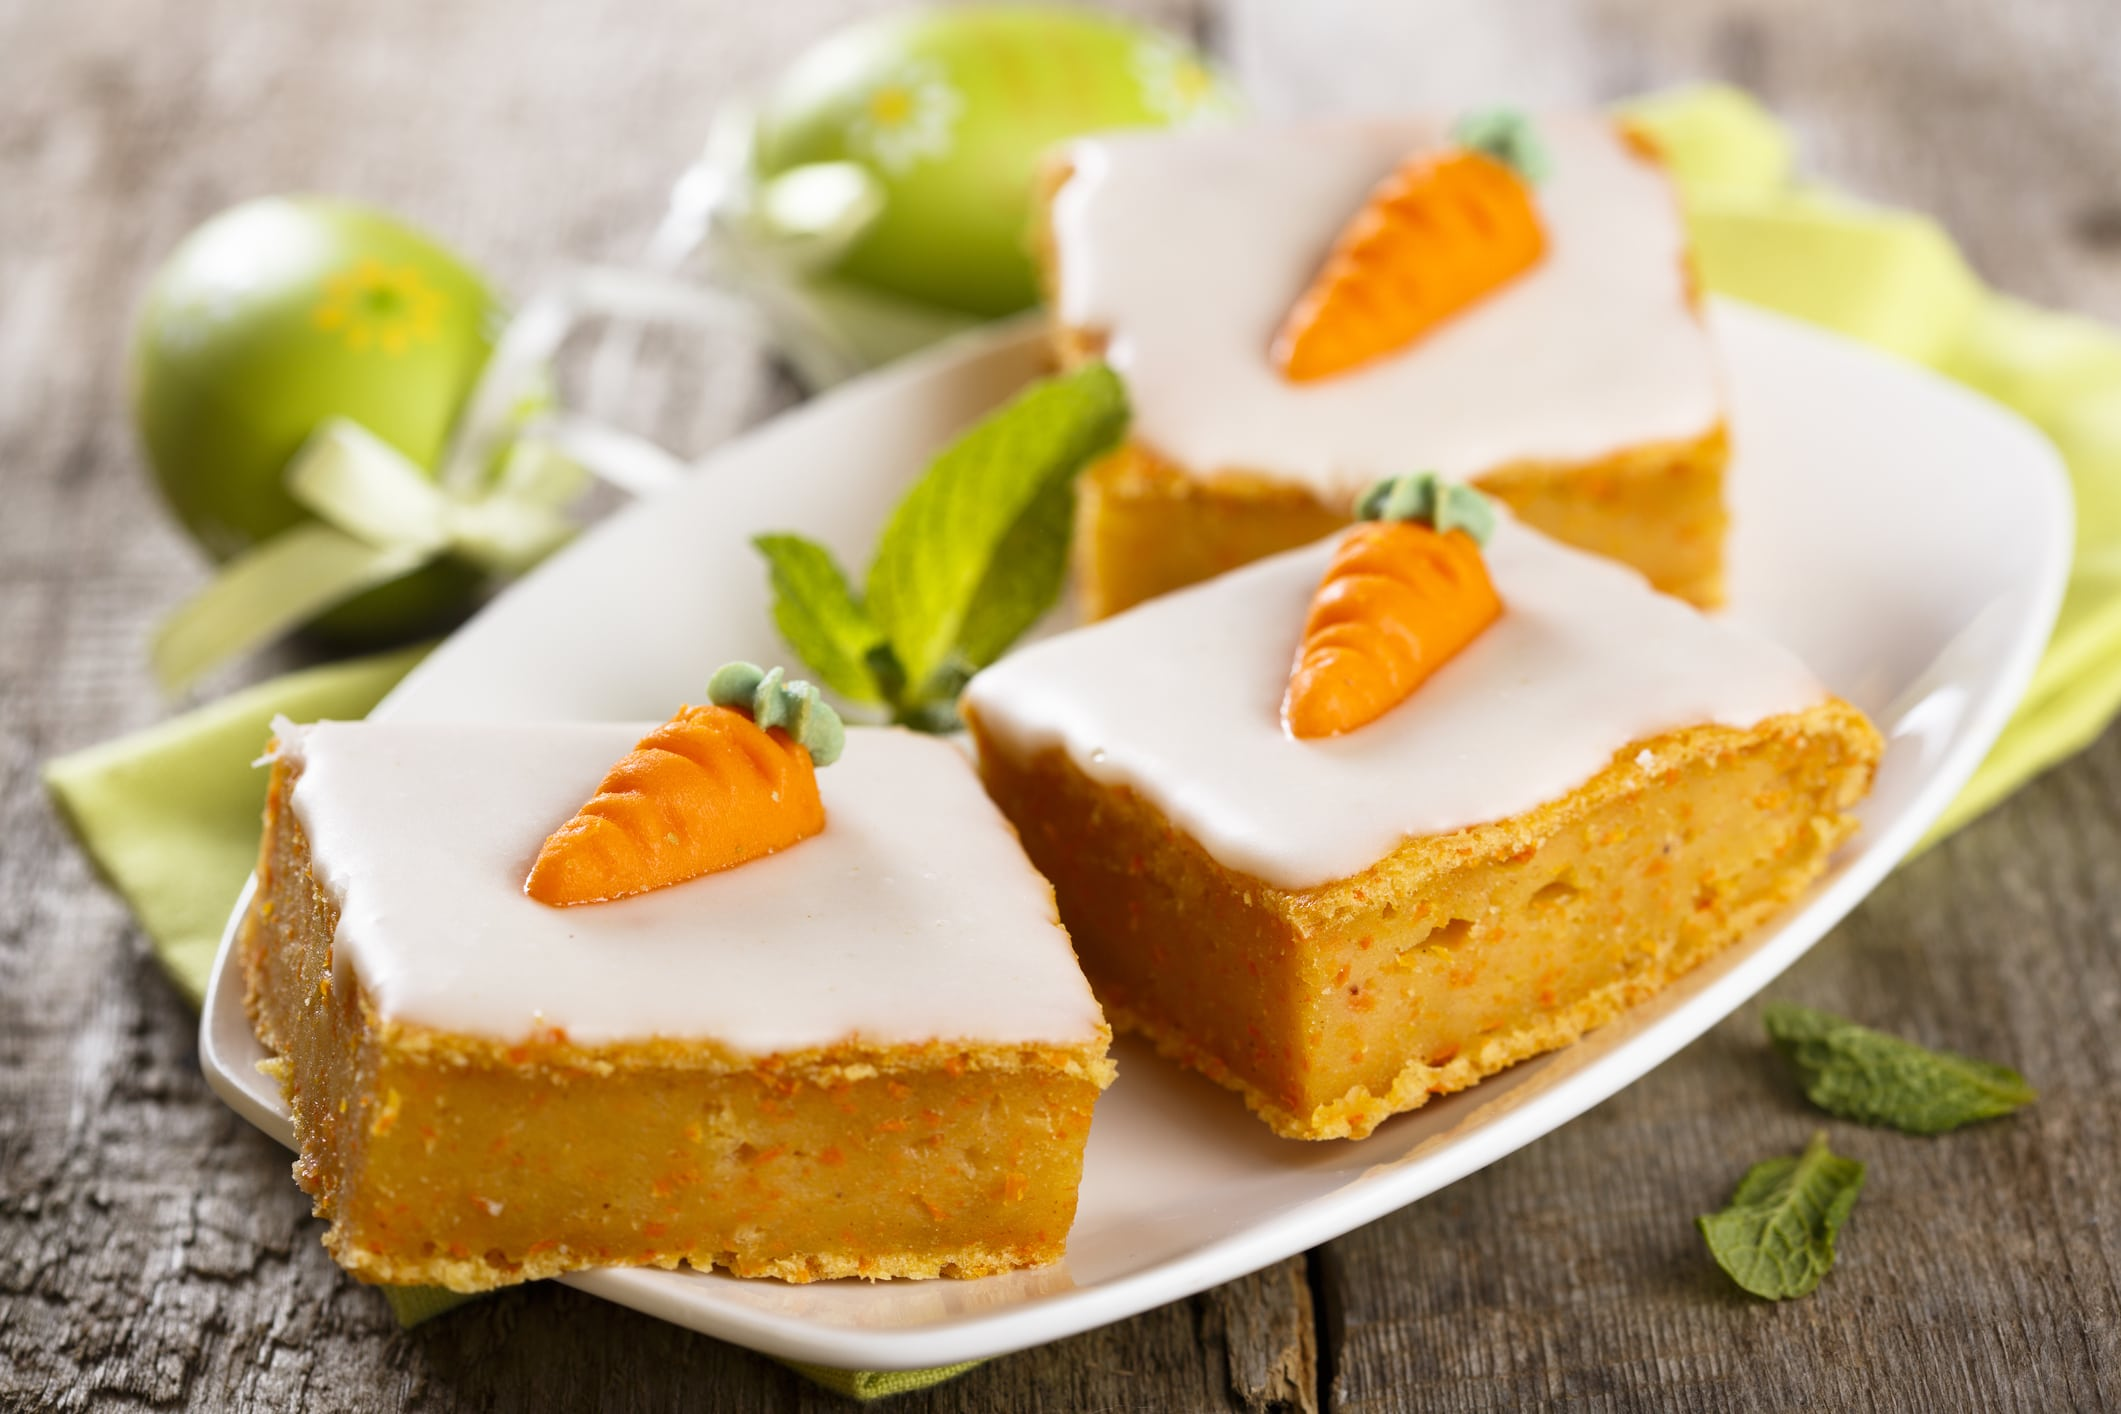 Carrot cake with marzipan carrot